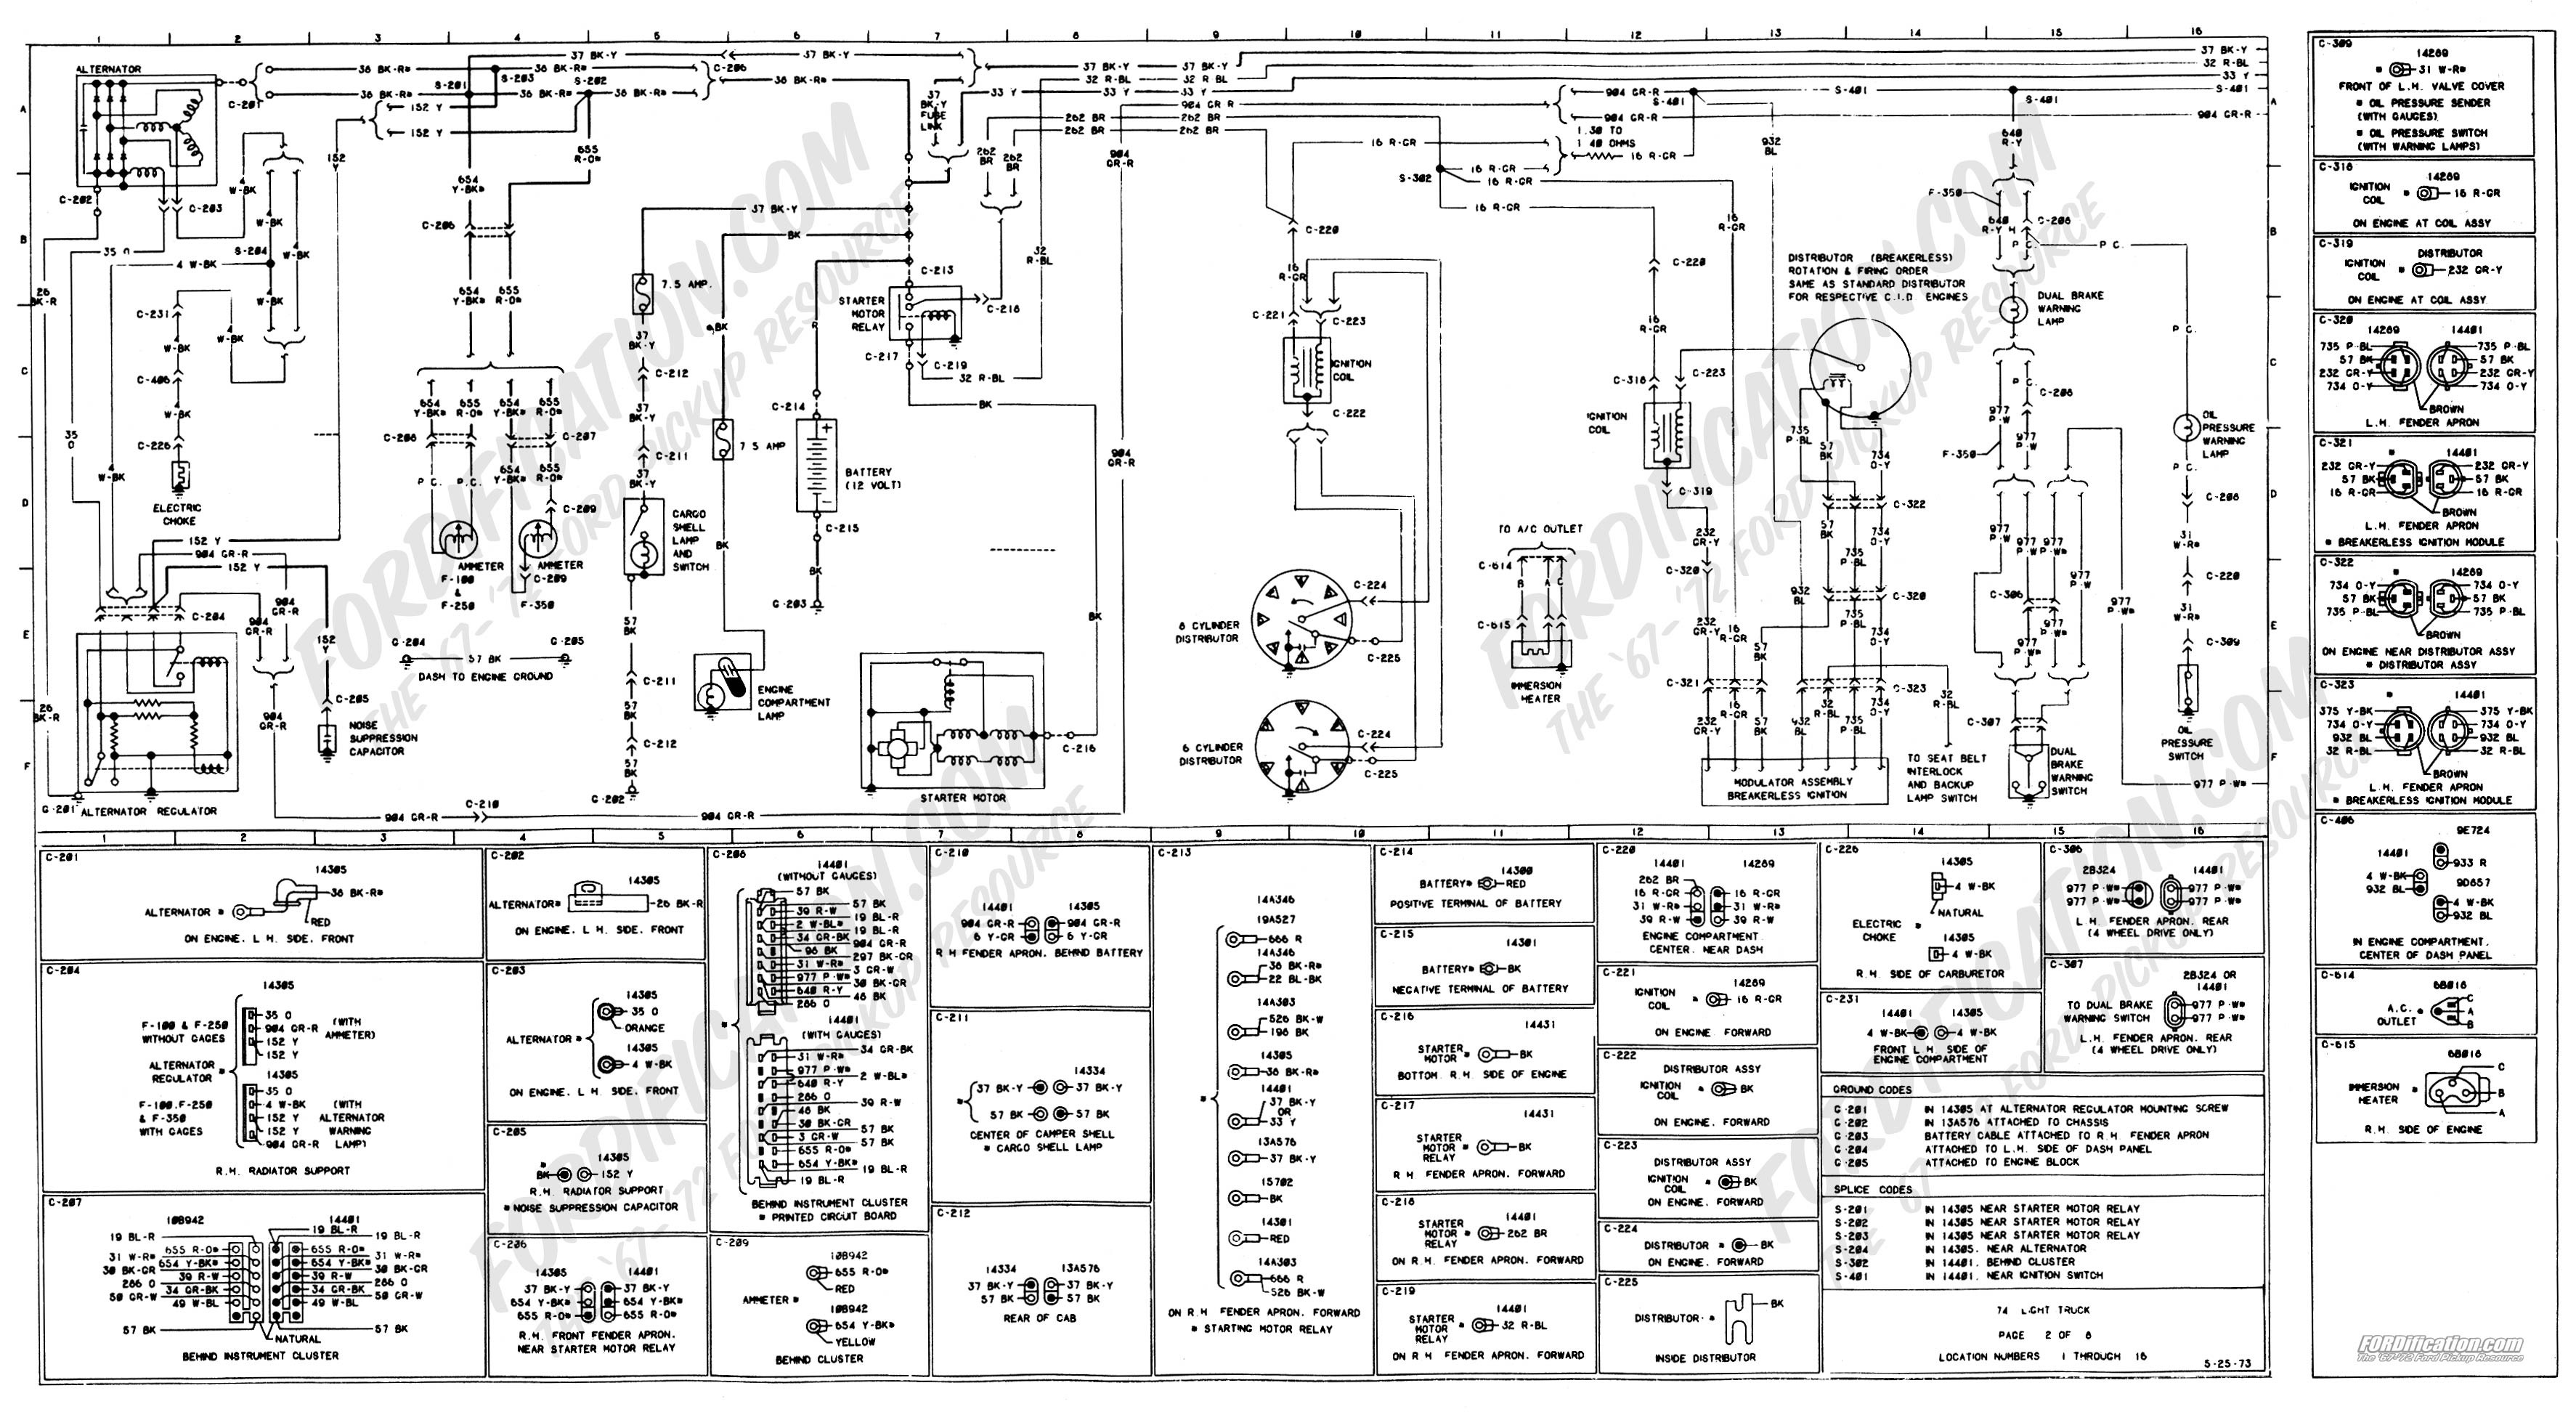 1978 Ford Pinto Wiring Diagram, · sterling truck wiring diagrams for  alternator best site